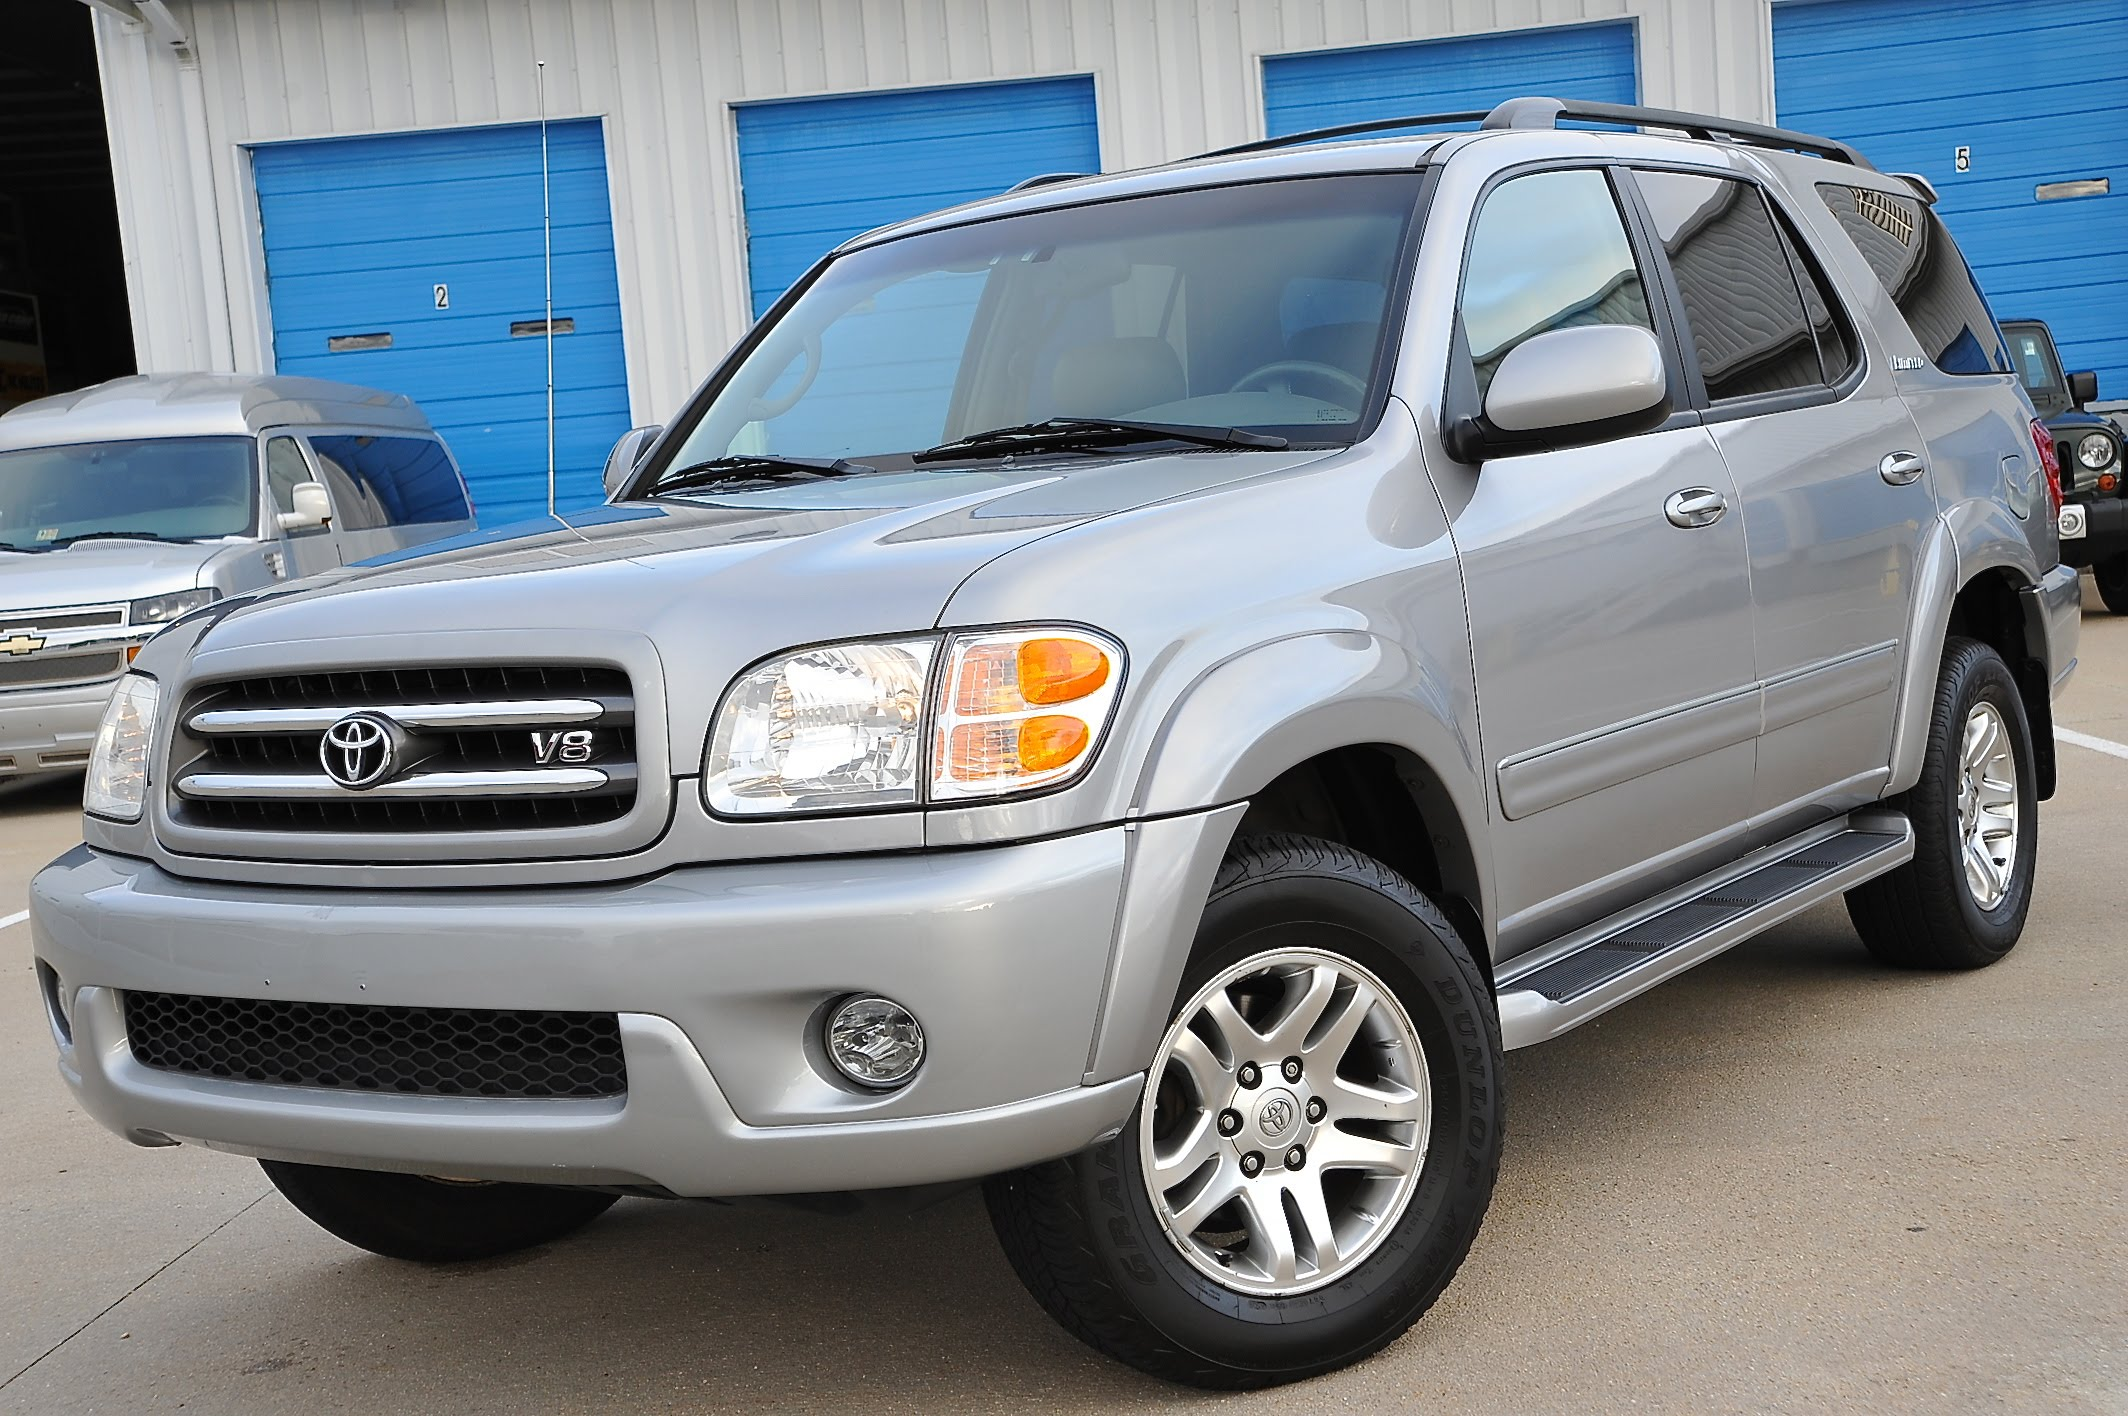 2004 toyota sequoia photos informations articles bestcarmag 2004 Toyota Sequoia SR5 Driver Side Airbag 2004 toyota sequoia 16